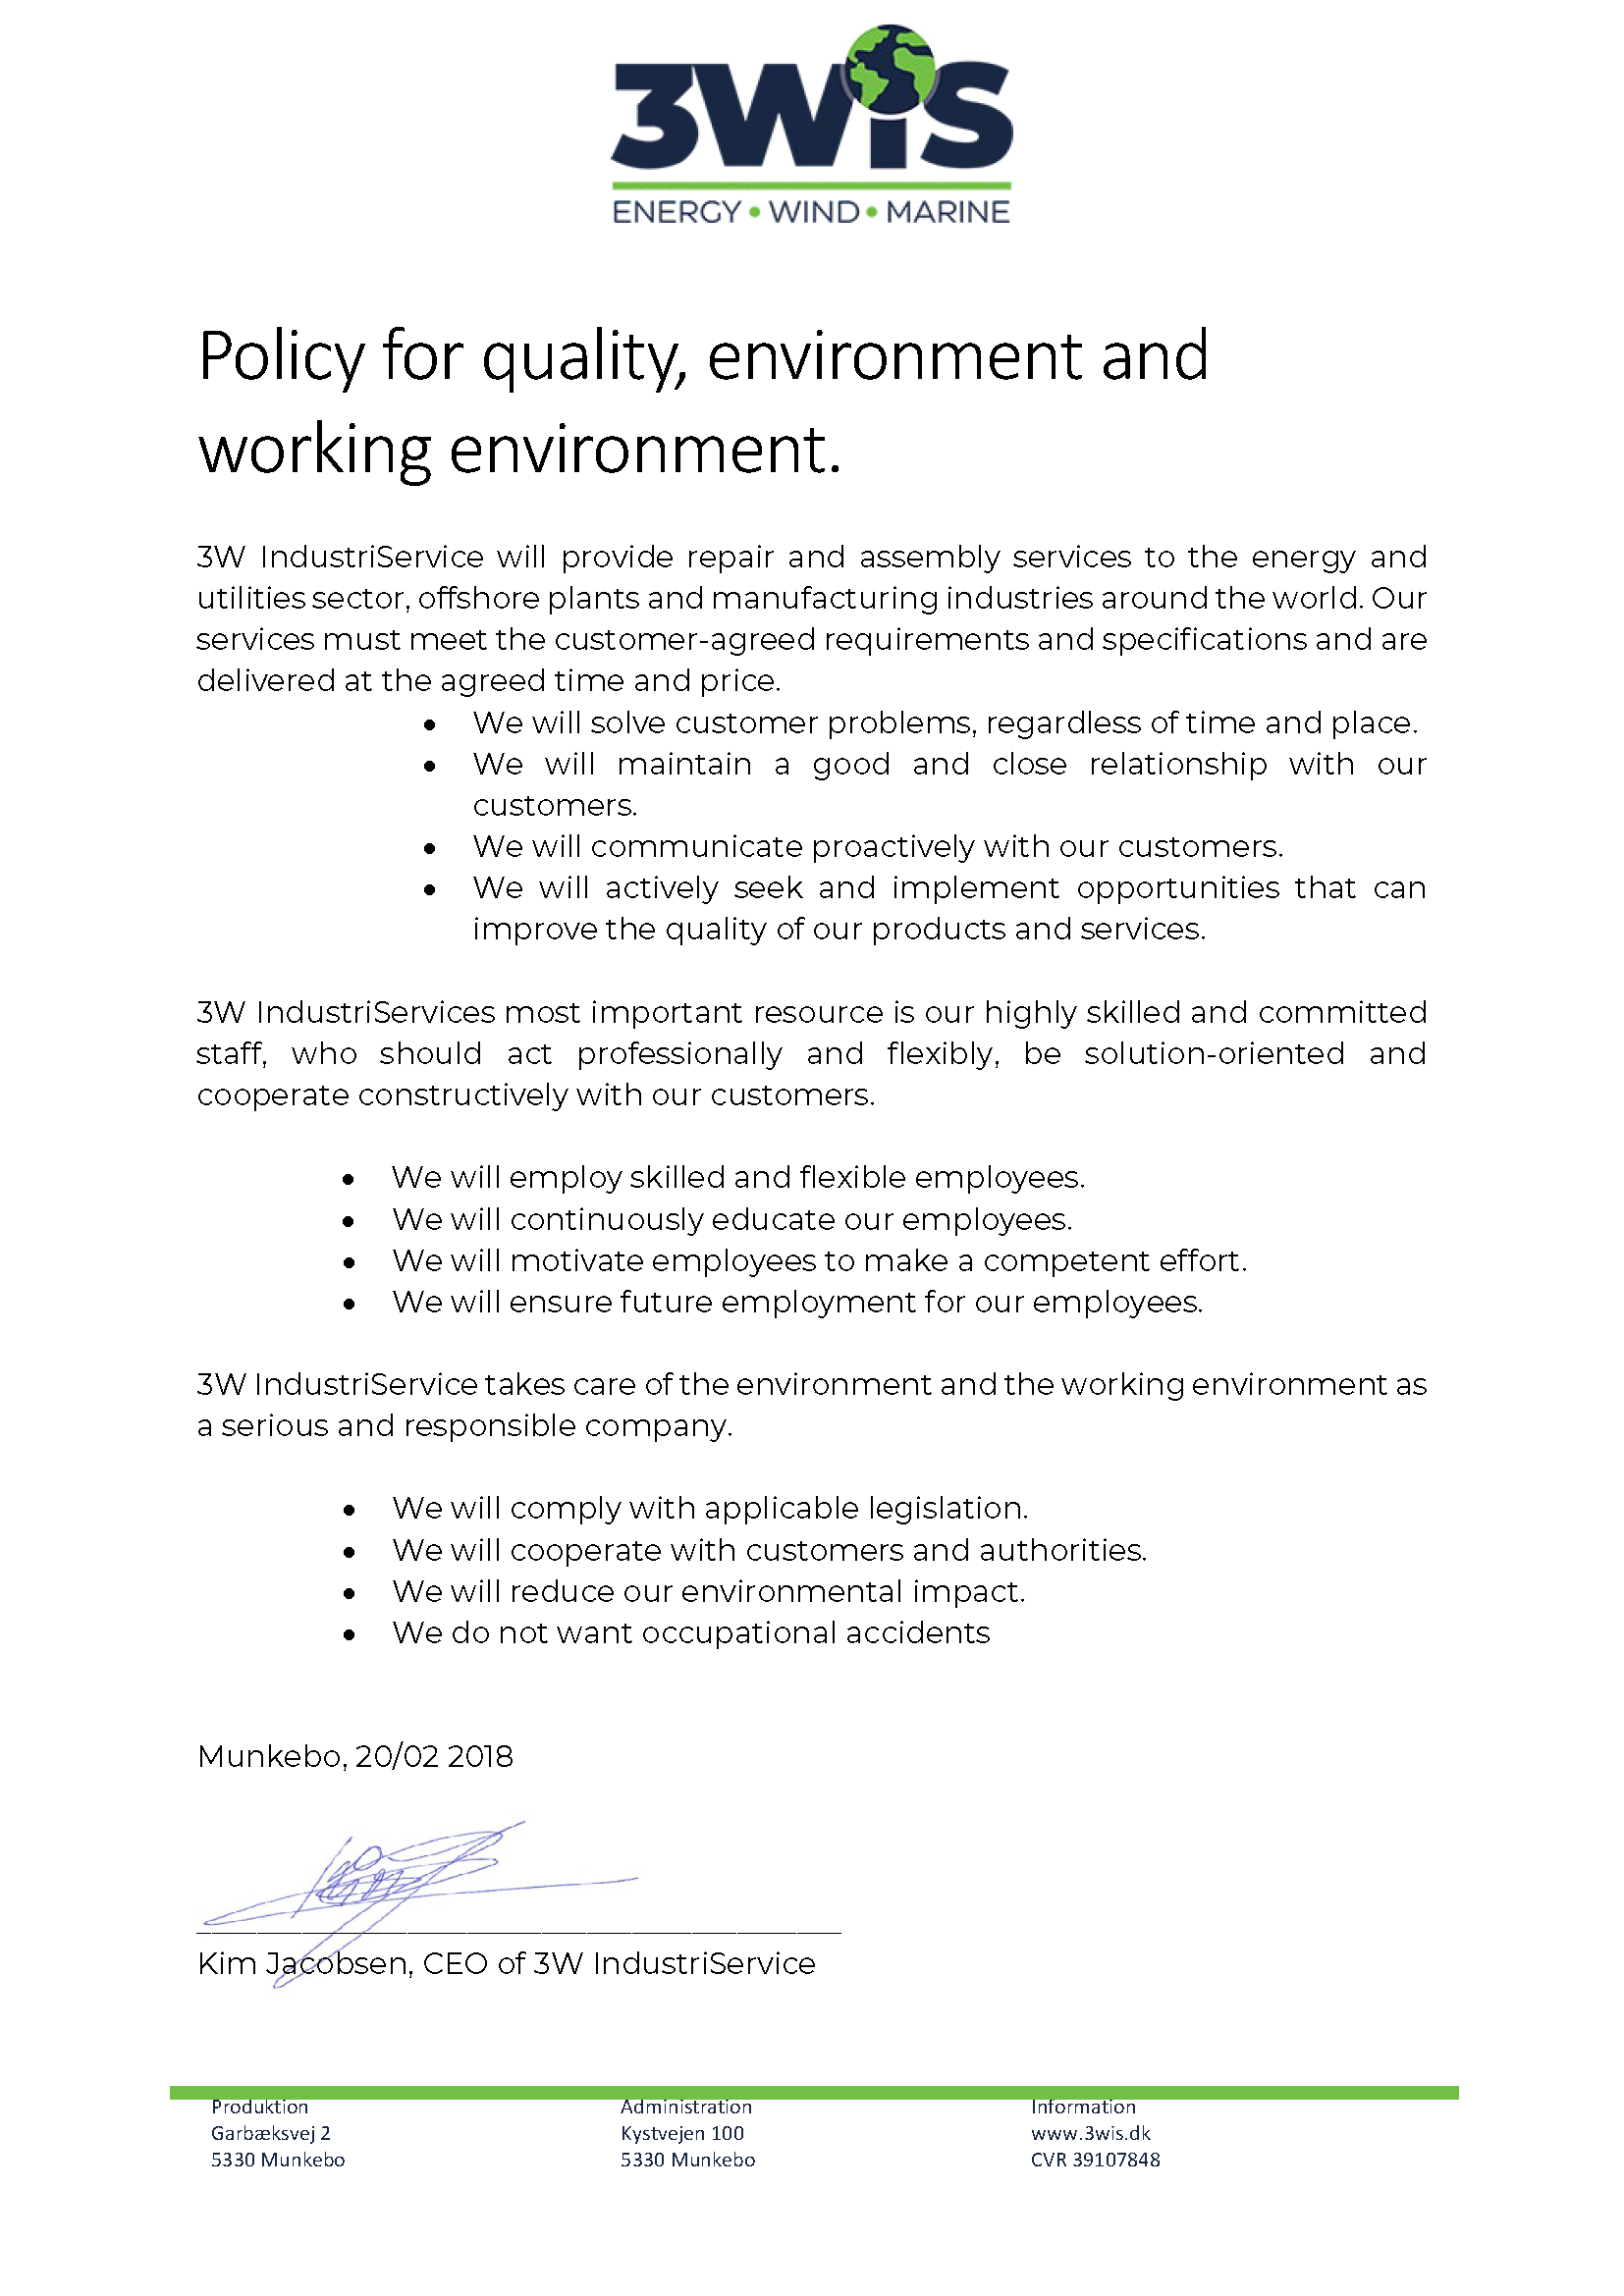 Policy for quality, environment and working environment